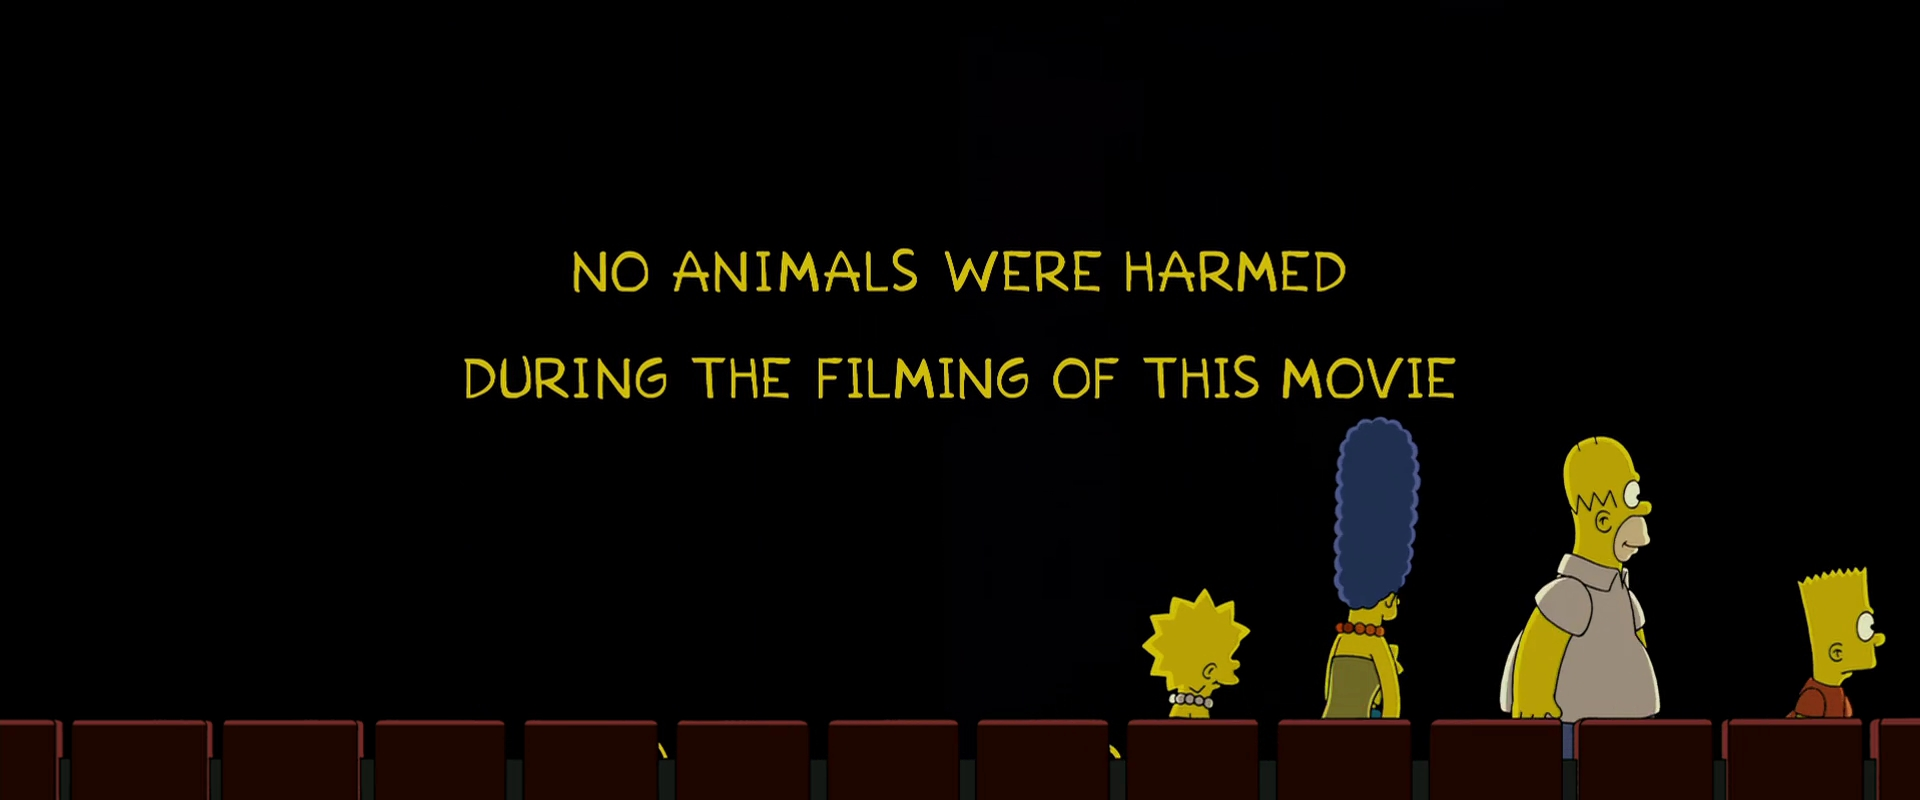 The Simpsons Movie Quotes Quotesgram